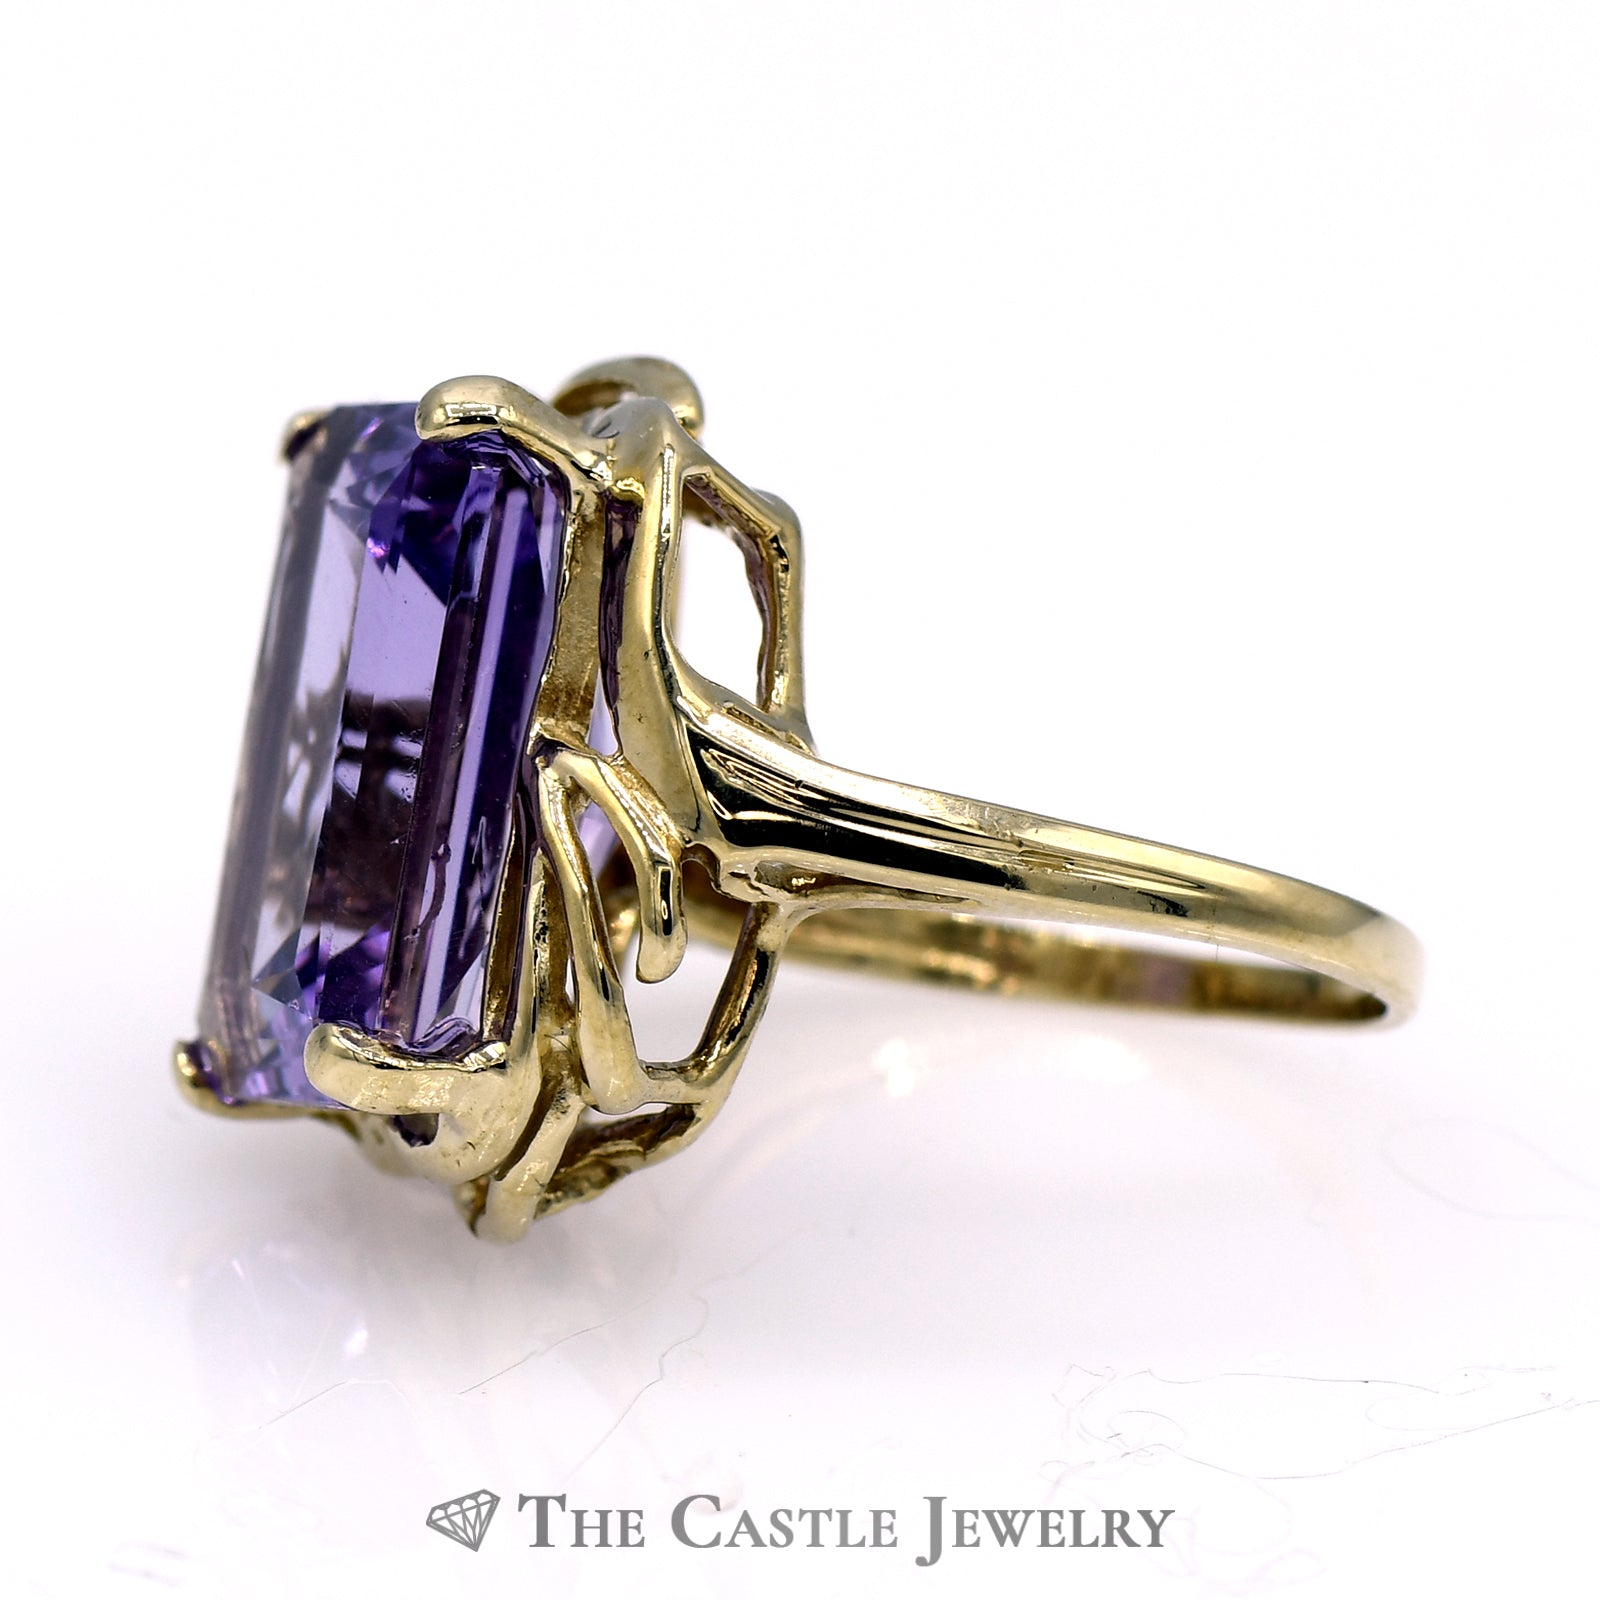 Emerald Cut Amethyst Ring with Swirl Designed 10k Yellow Gold Mounting-2